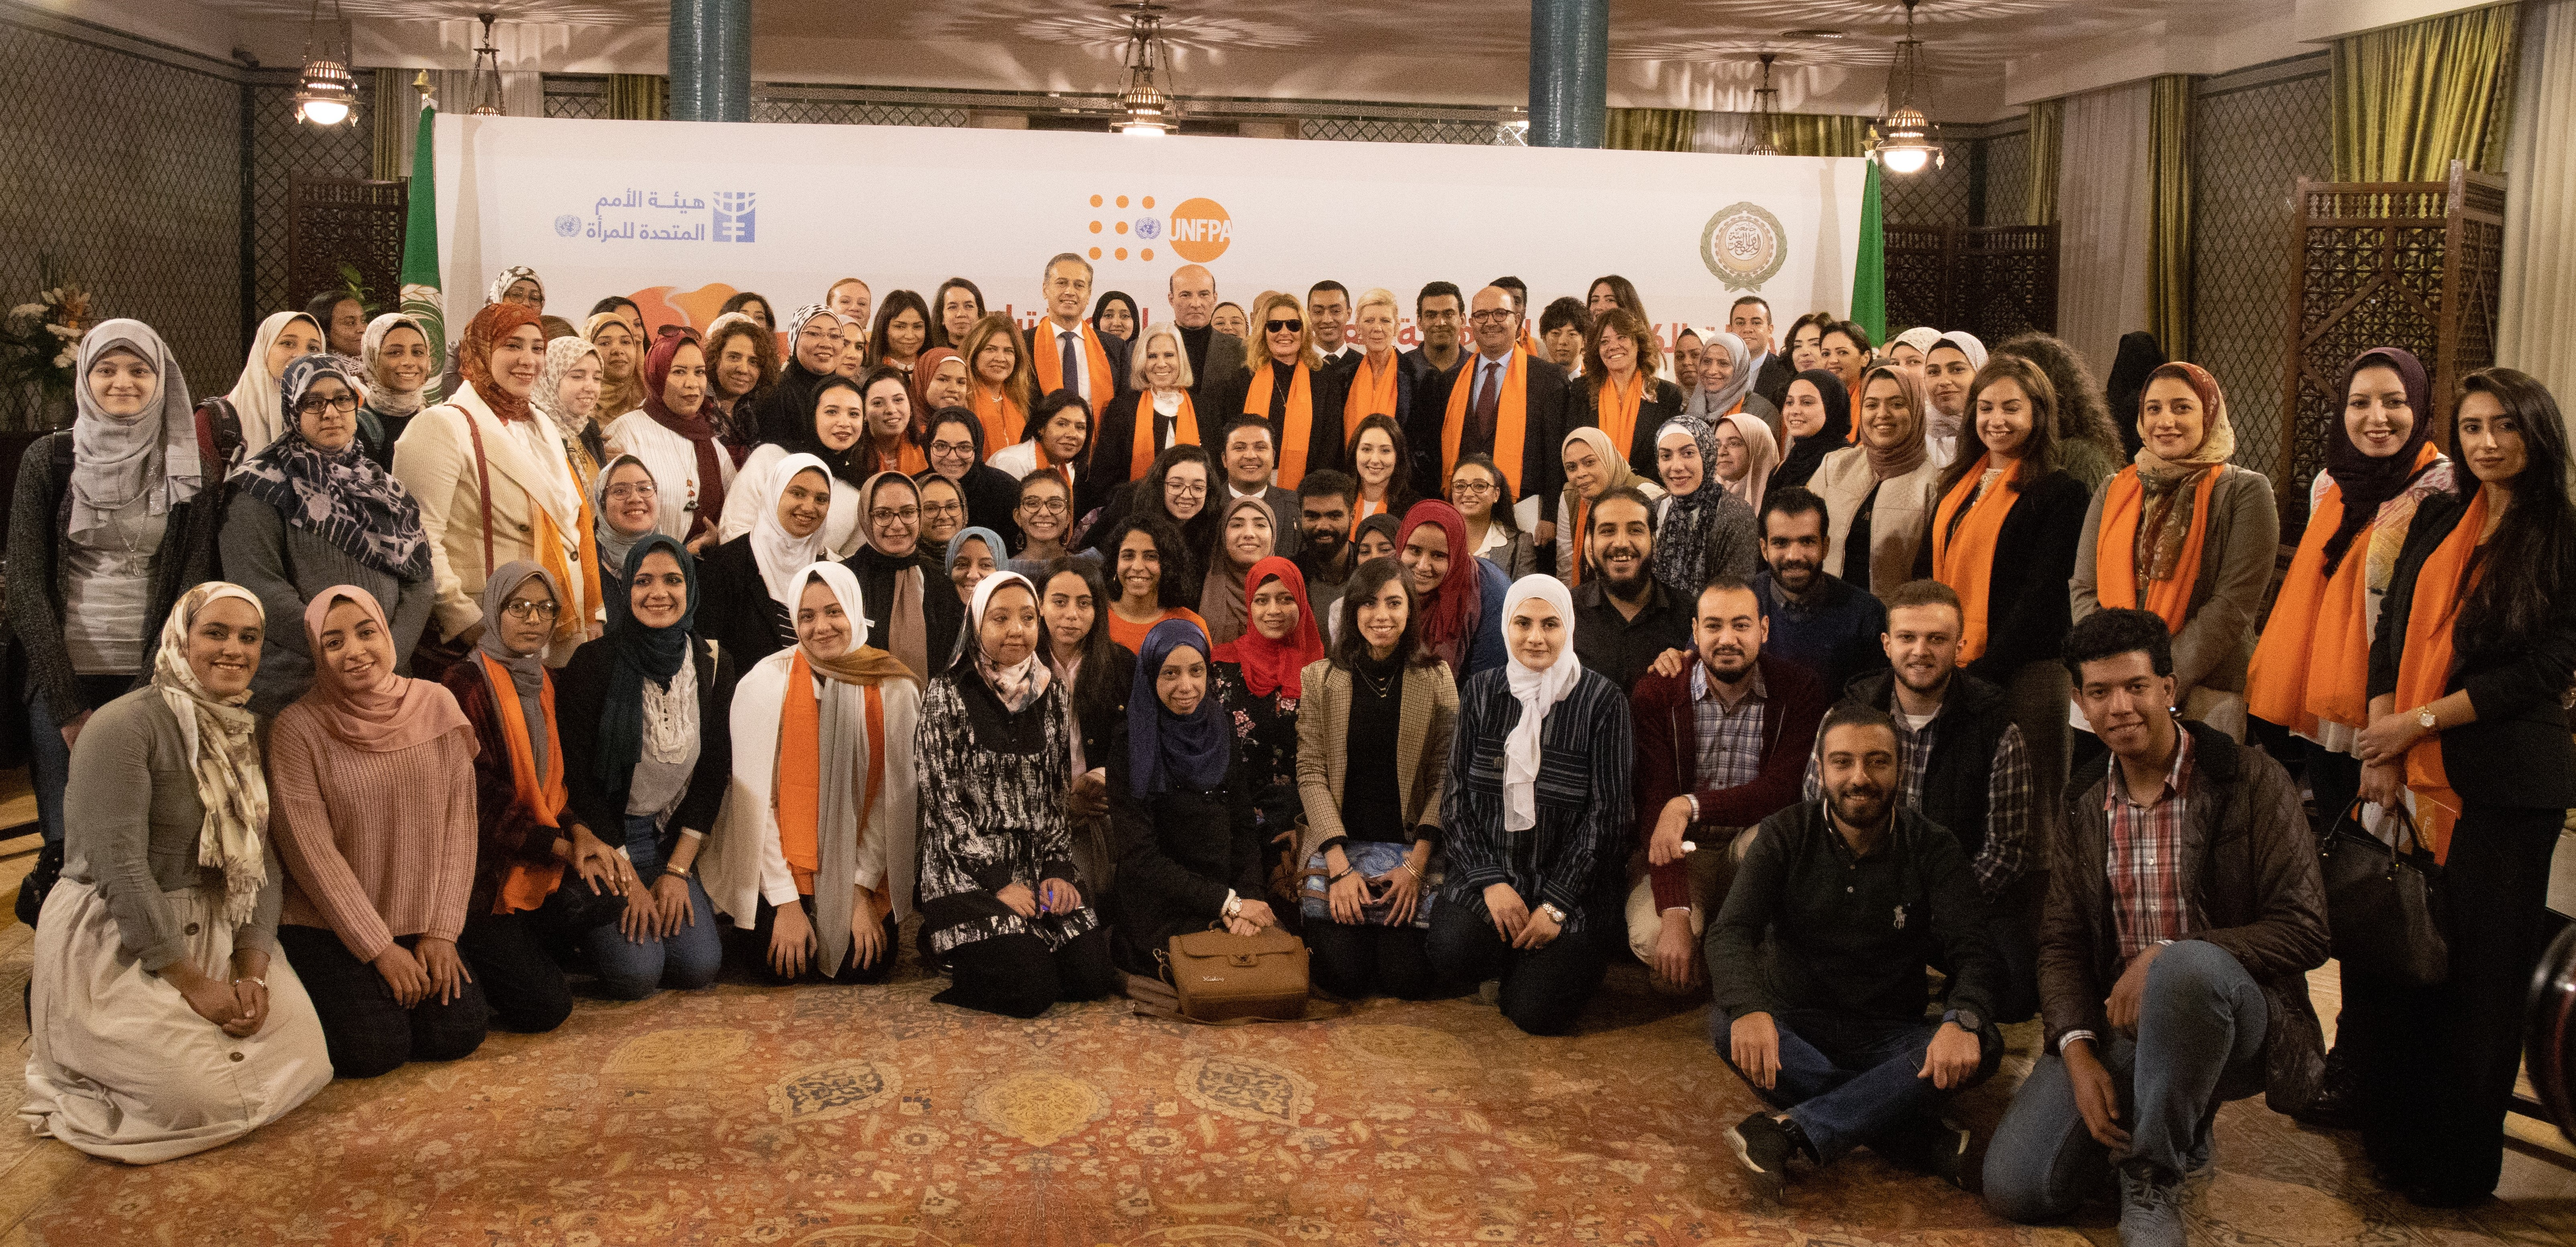 The League of Arab States, UN Women and UNFPA renew a shared commitment to address violence against women